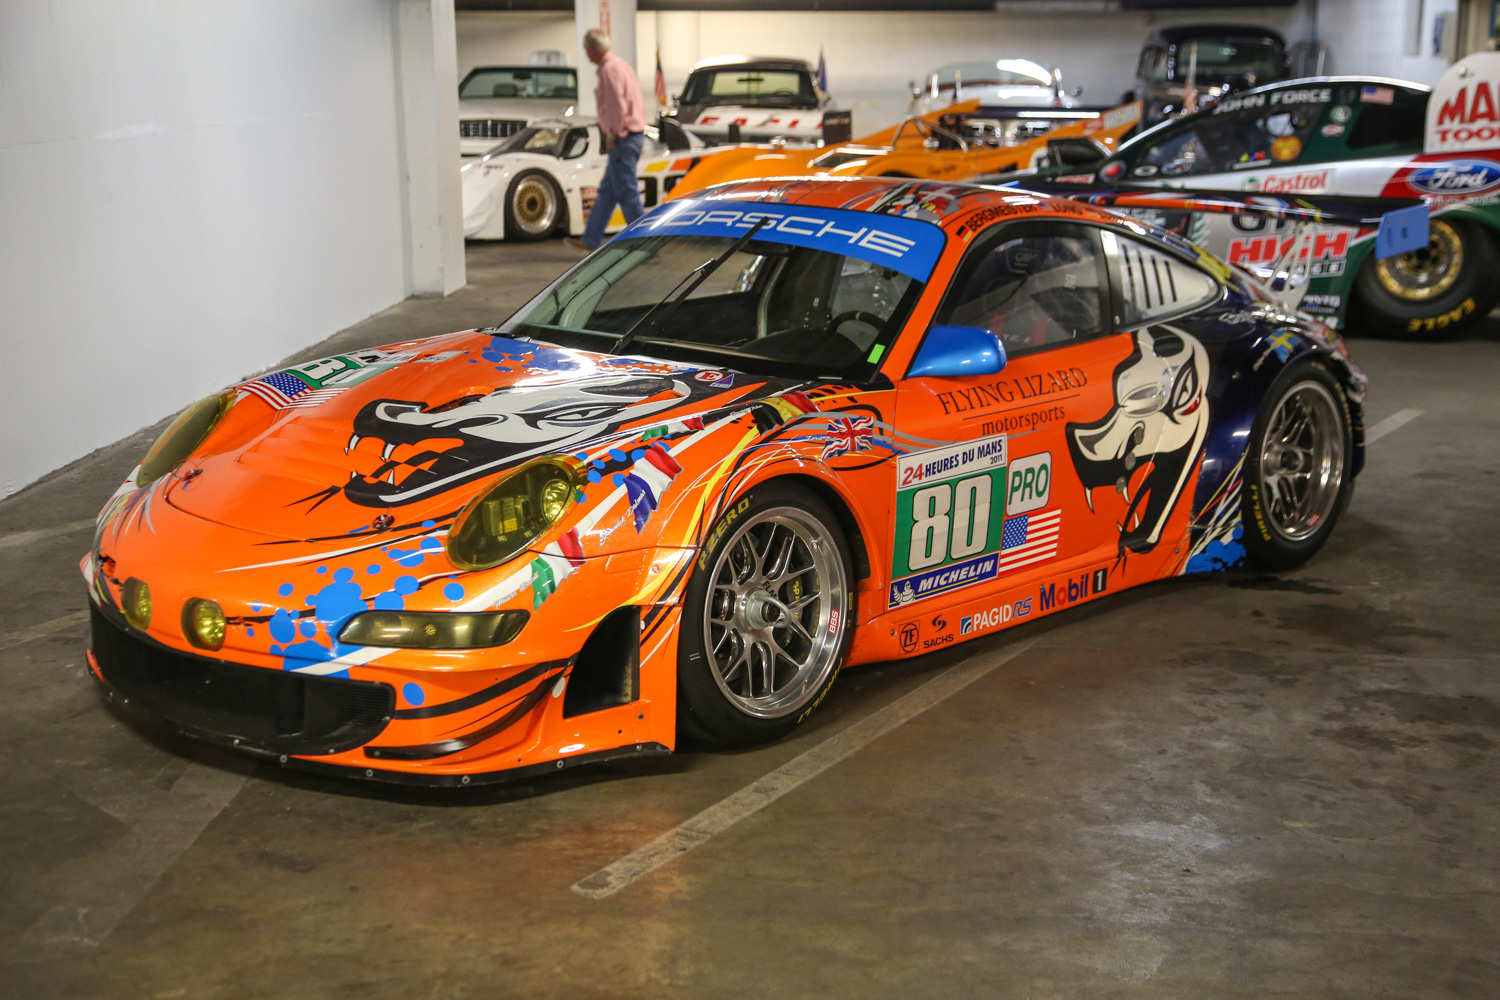 Built as an homage to Porsche's success at Le Mans, this 997 GT3 RSR wears Flying Lizard livery and has been signed by many of the Porsche drivers who drove to victory in class at Le Mans.